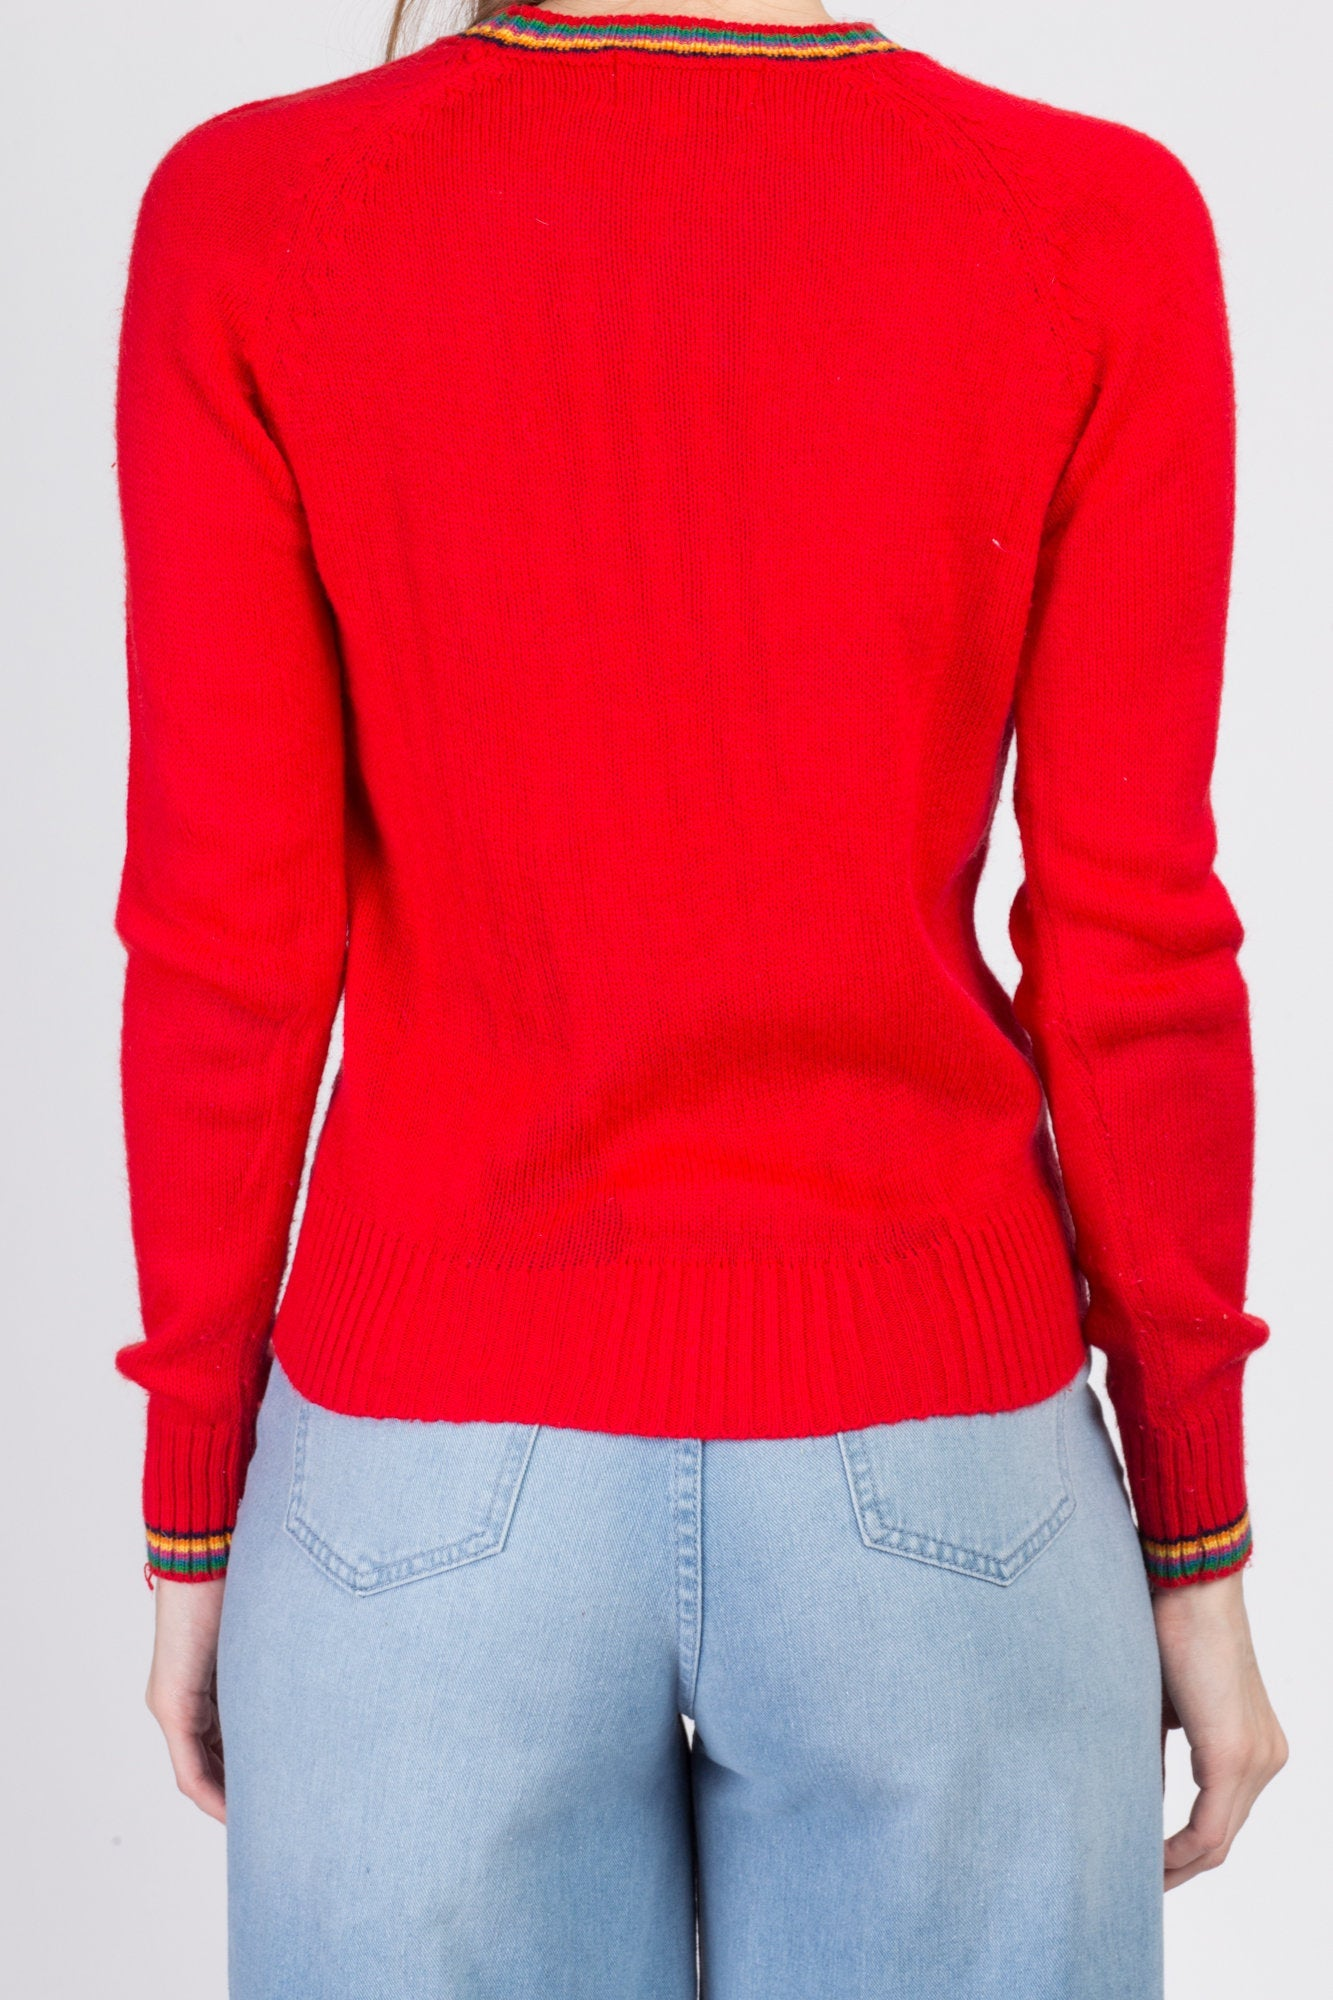 70s Red Rainbow Trim Sweater - Small